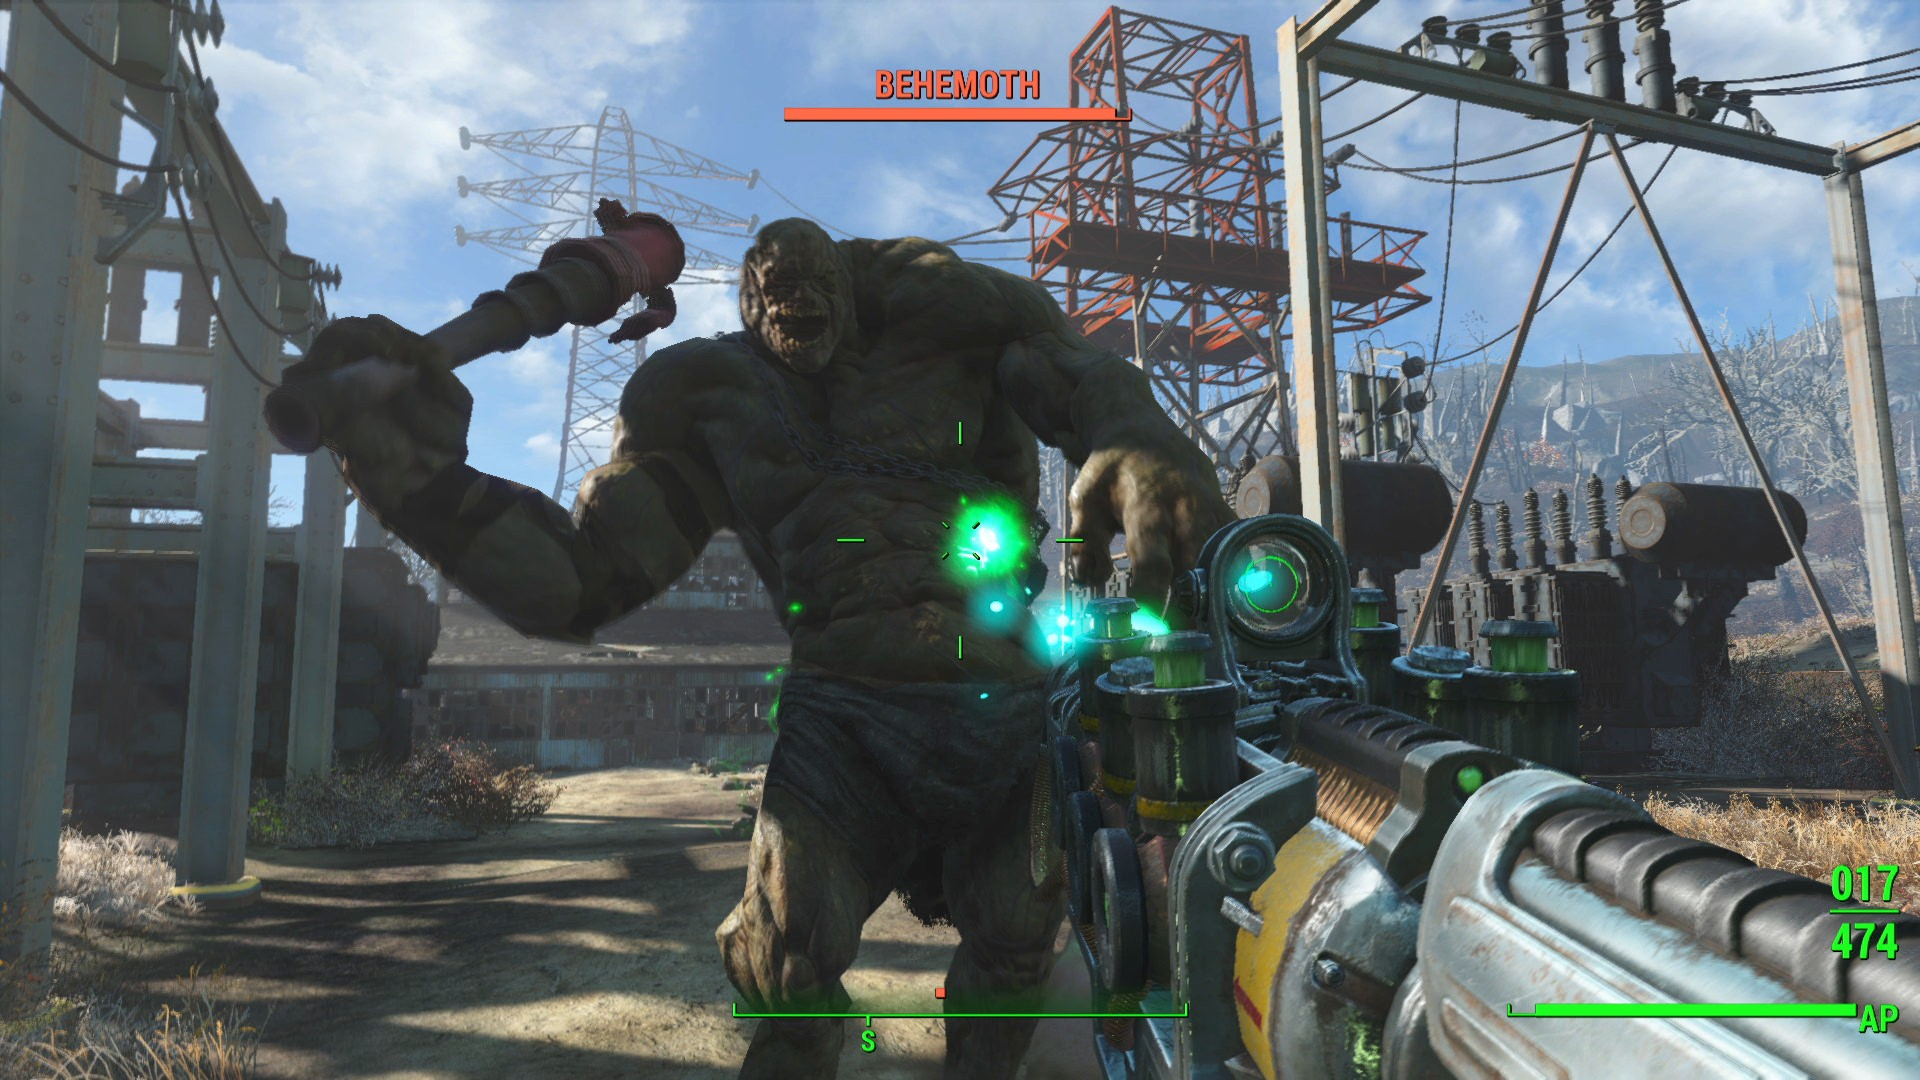 Fallout 4 Release Date In 2015 Or It Will Be Delayed Even More?